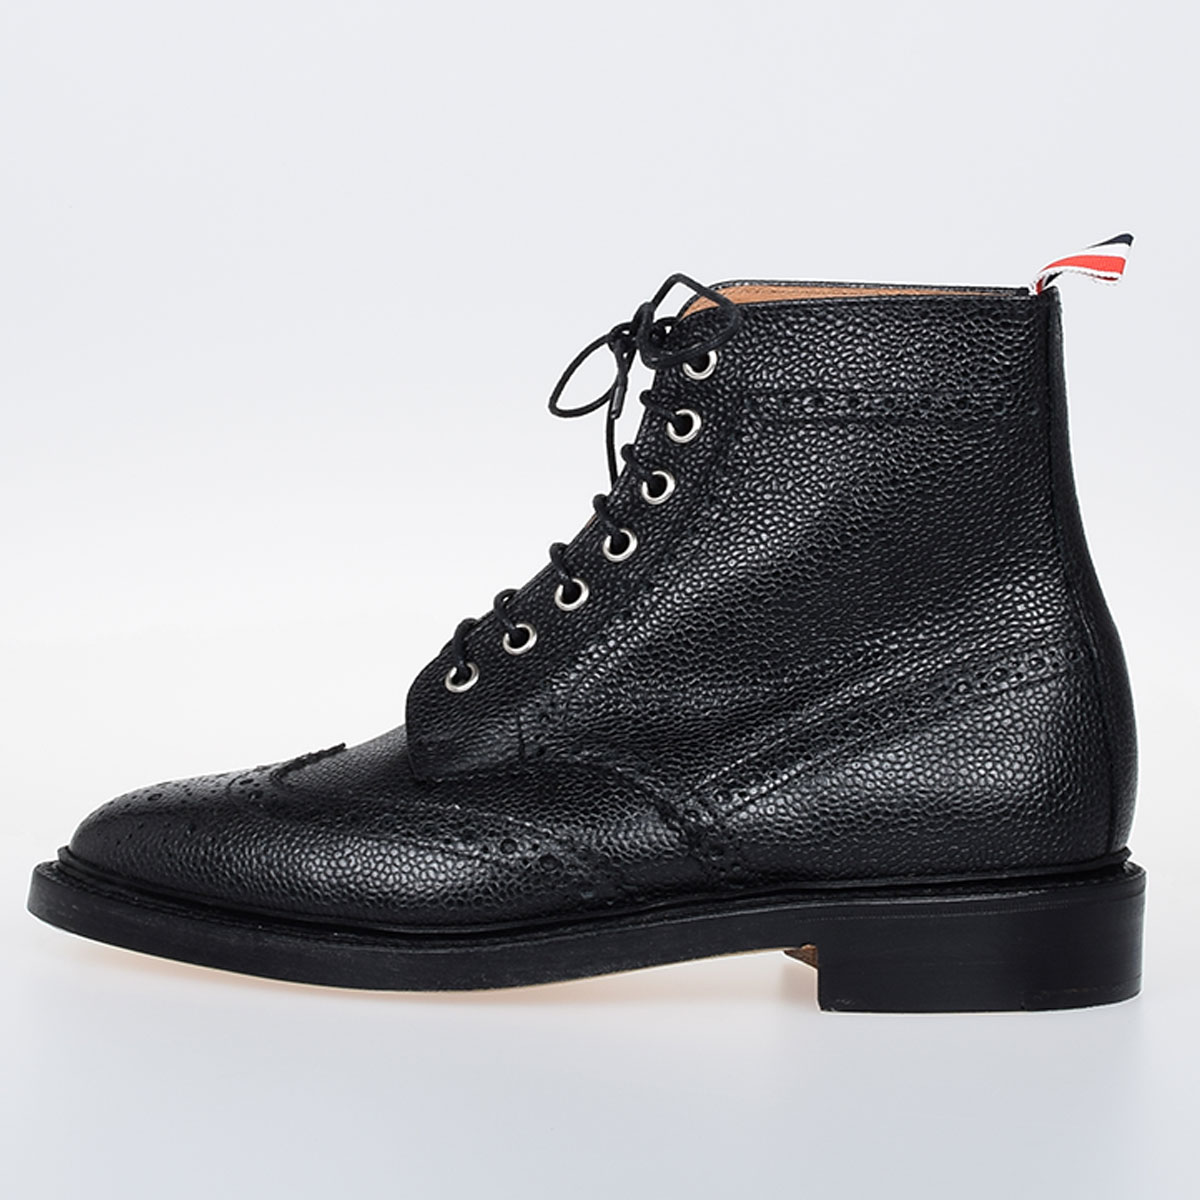 fd1d76210f1 Thom Browne Men Classic Wingtip Boot - Glamood Outlet